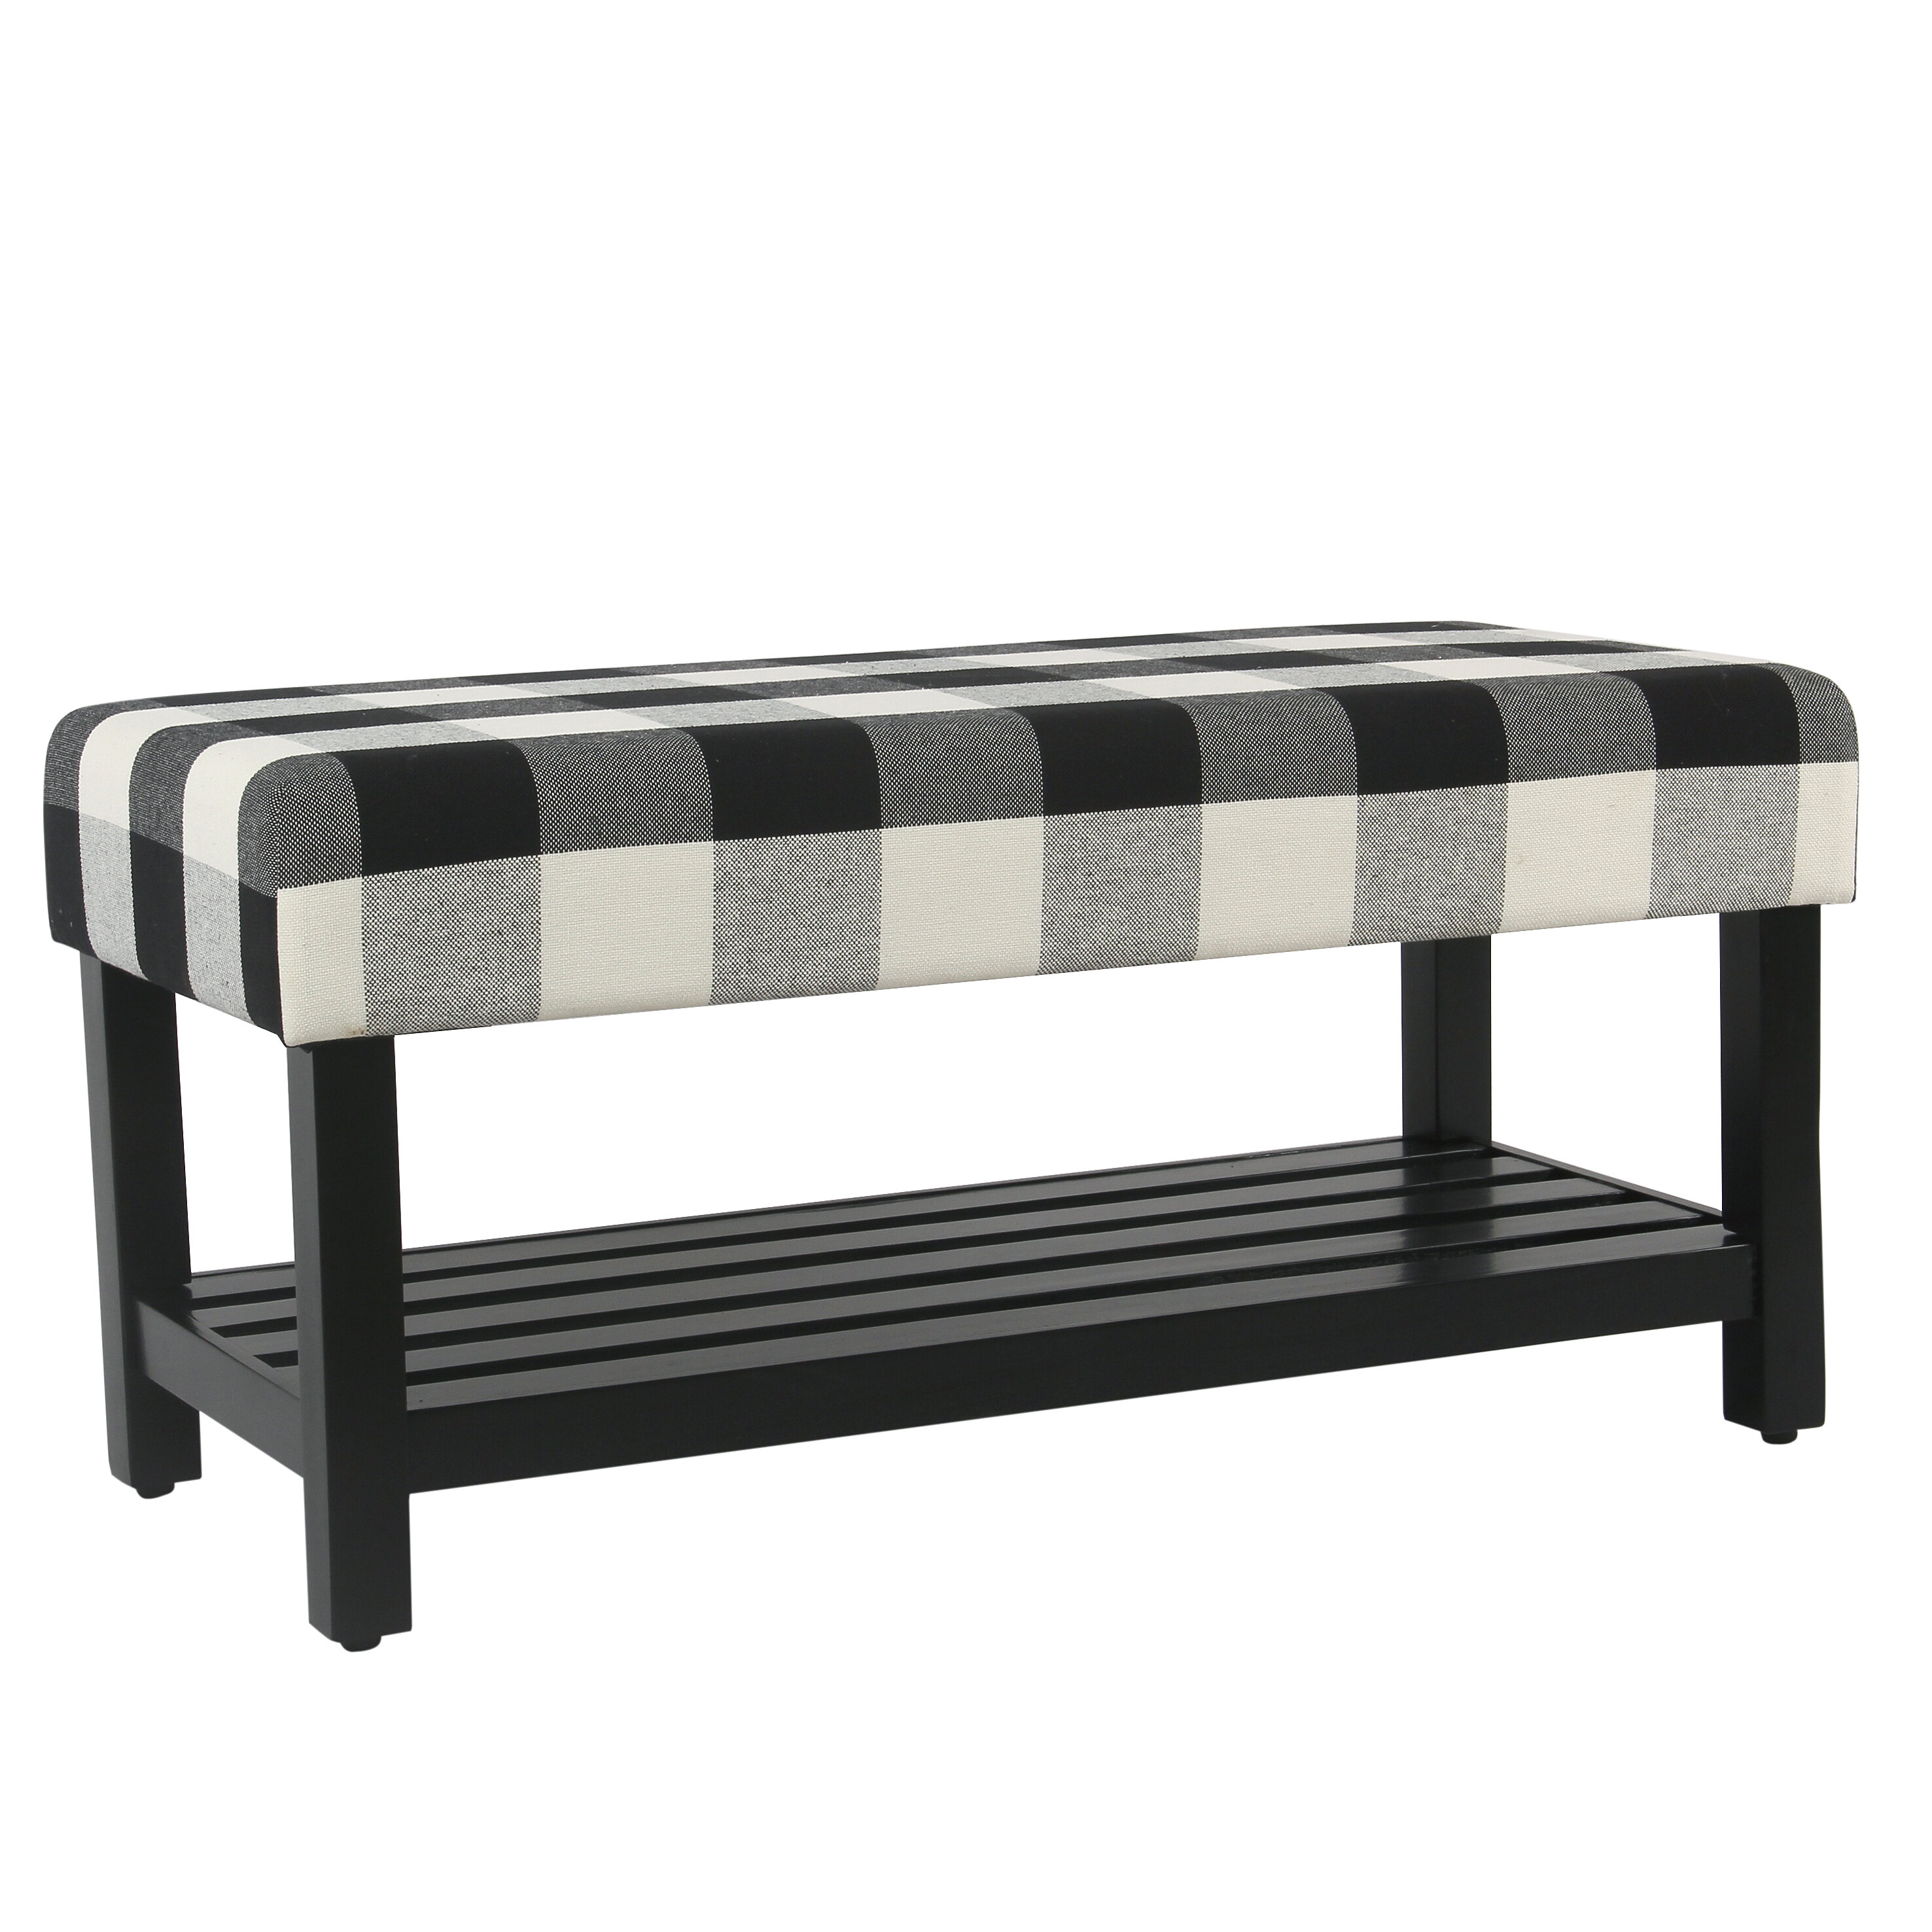 Gracie Oaks Prudhomme Decorative Upholstered Storage Bench Reviews Wayfair